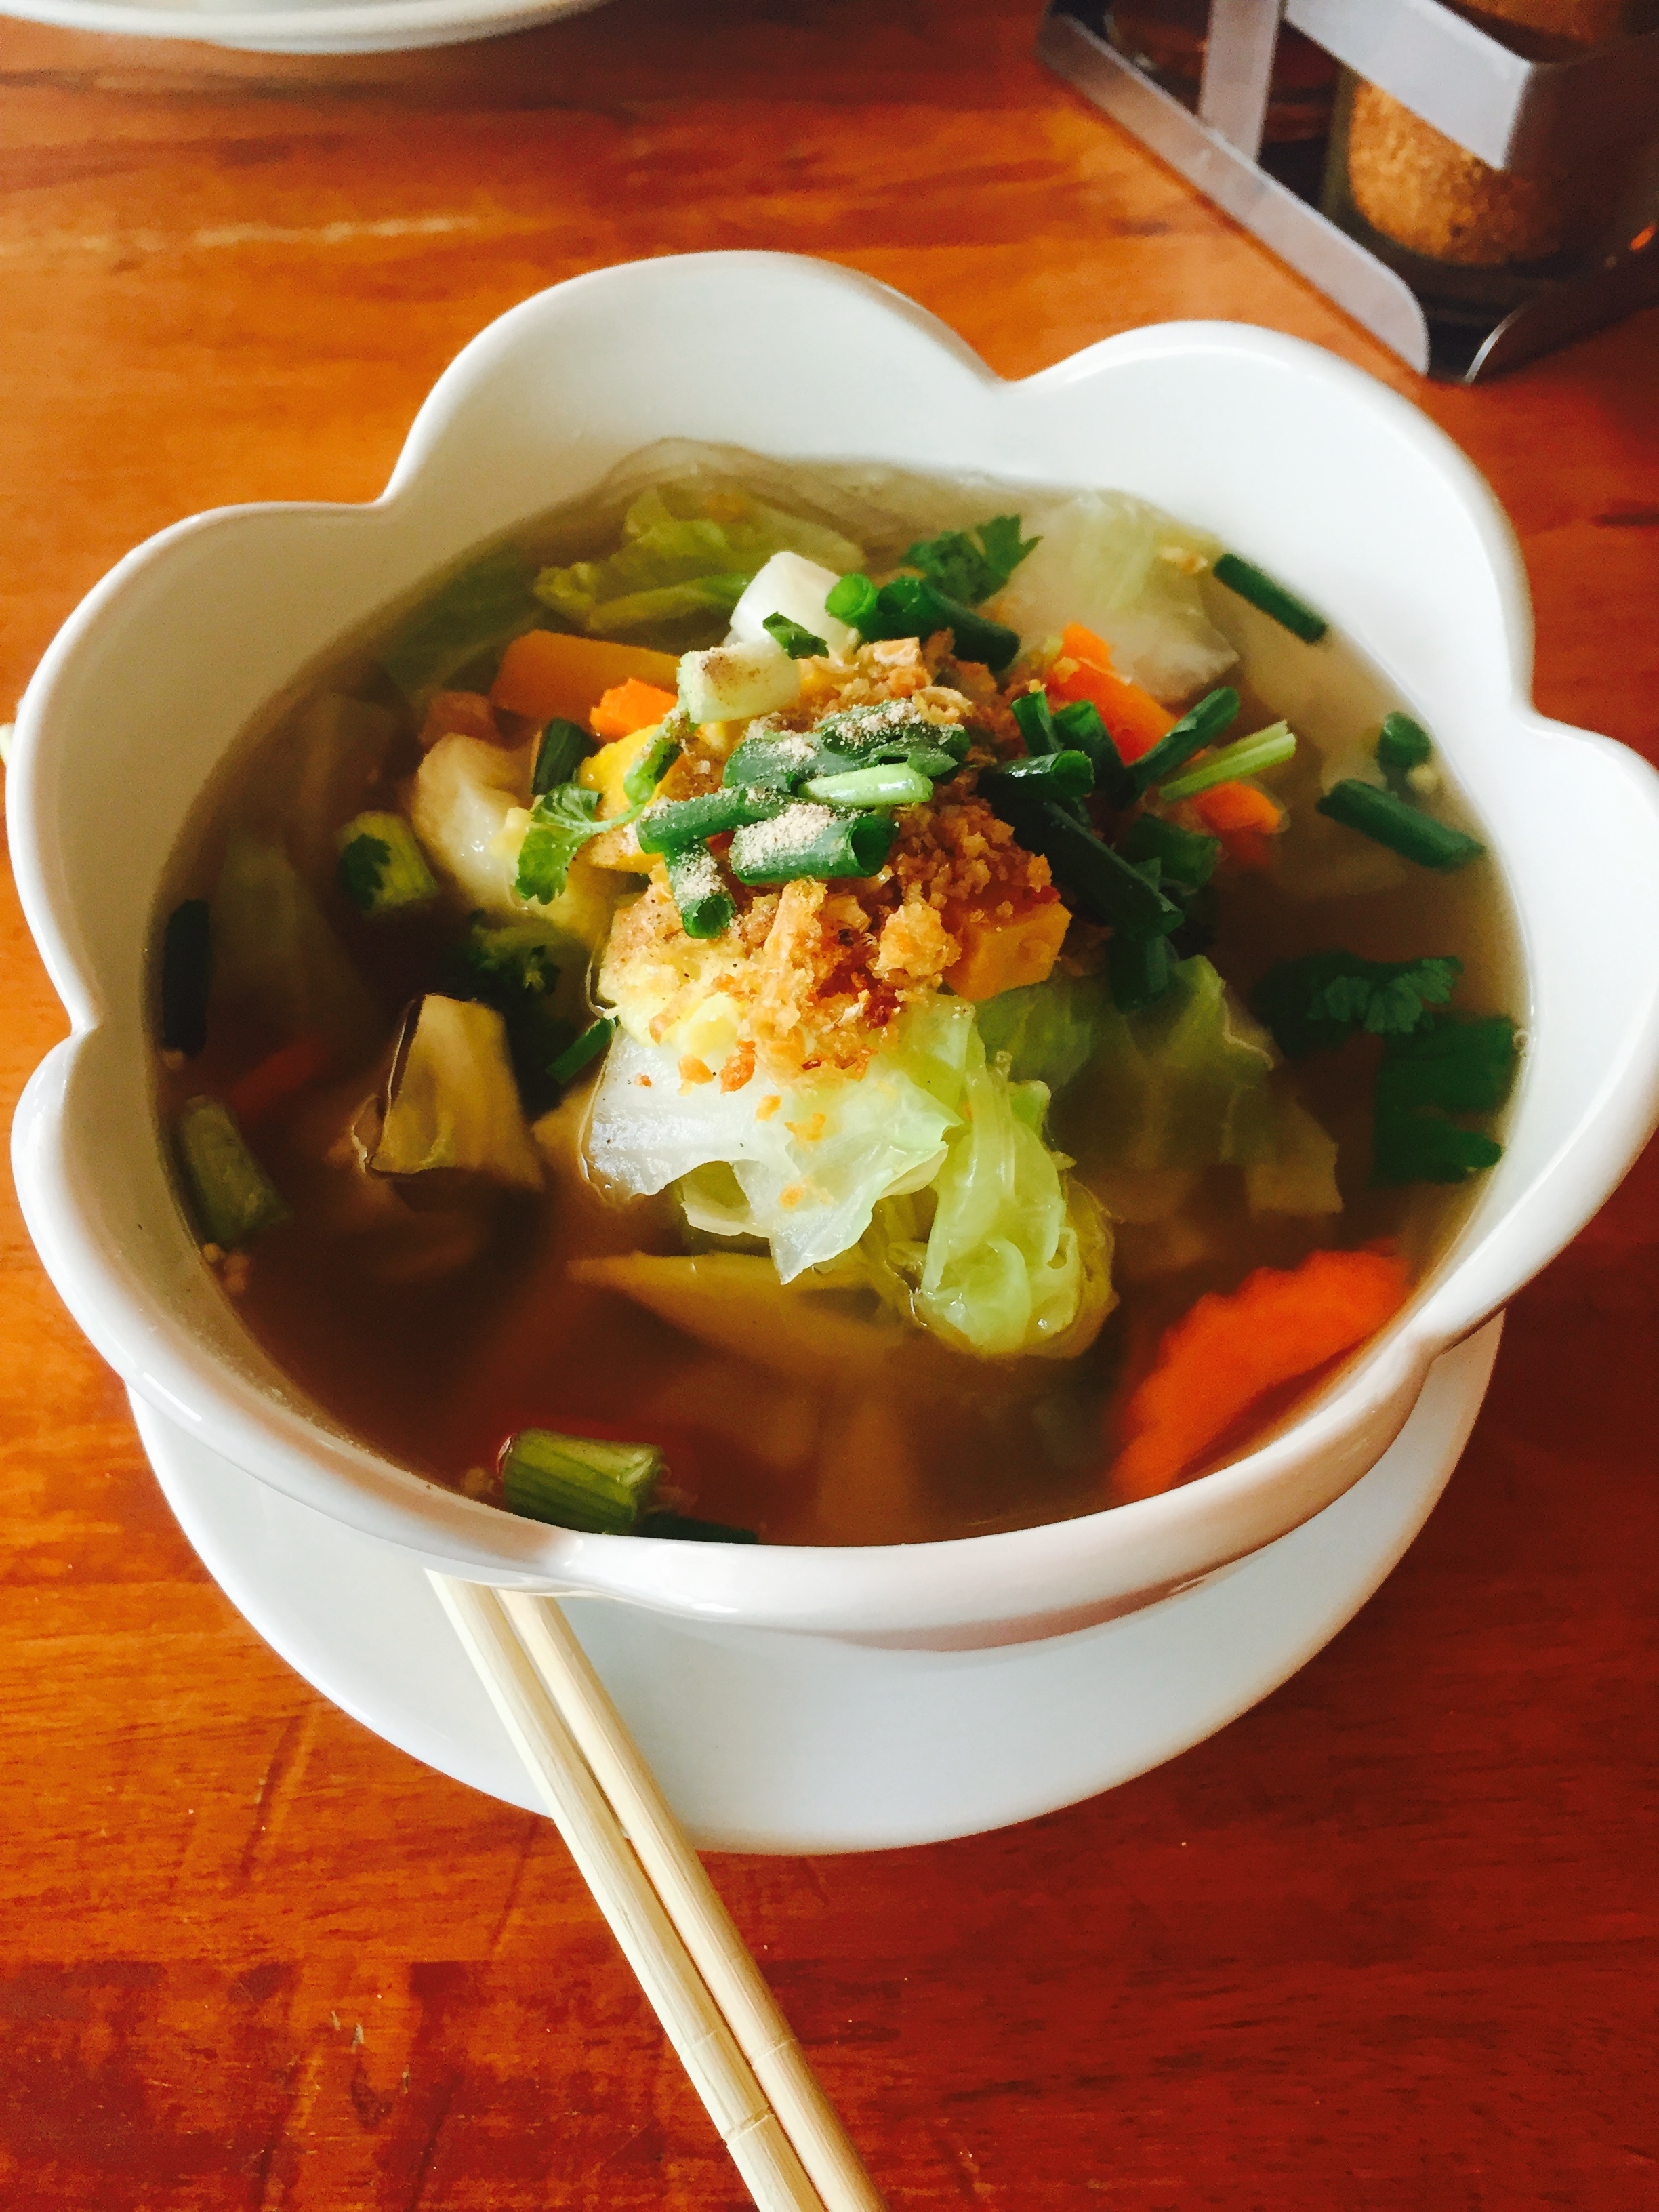 My biggest food discovery on the island: vegetable glass noodle soup. Garlic breath for days, but worth it!